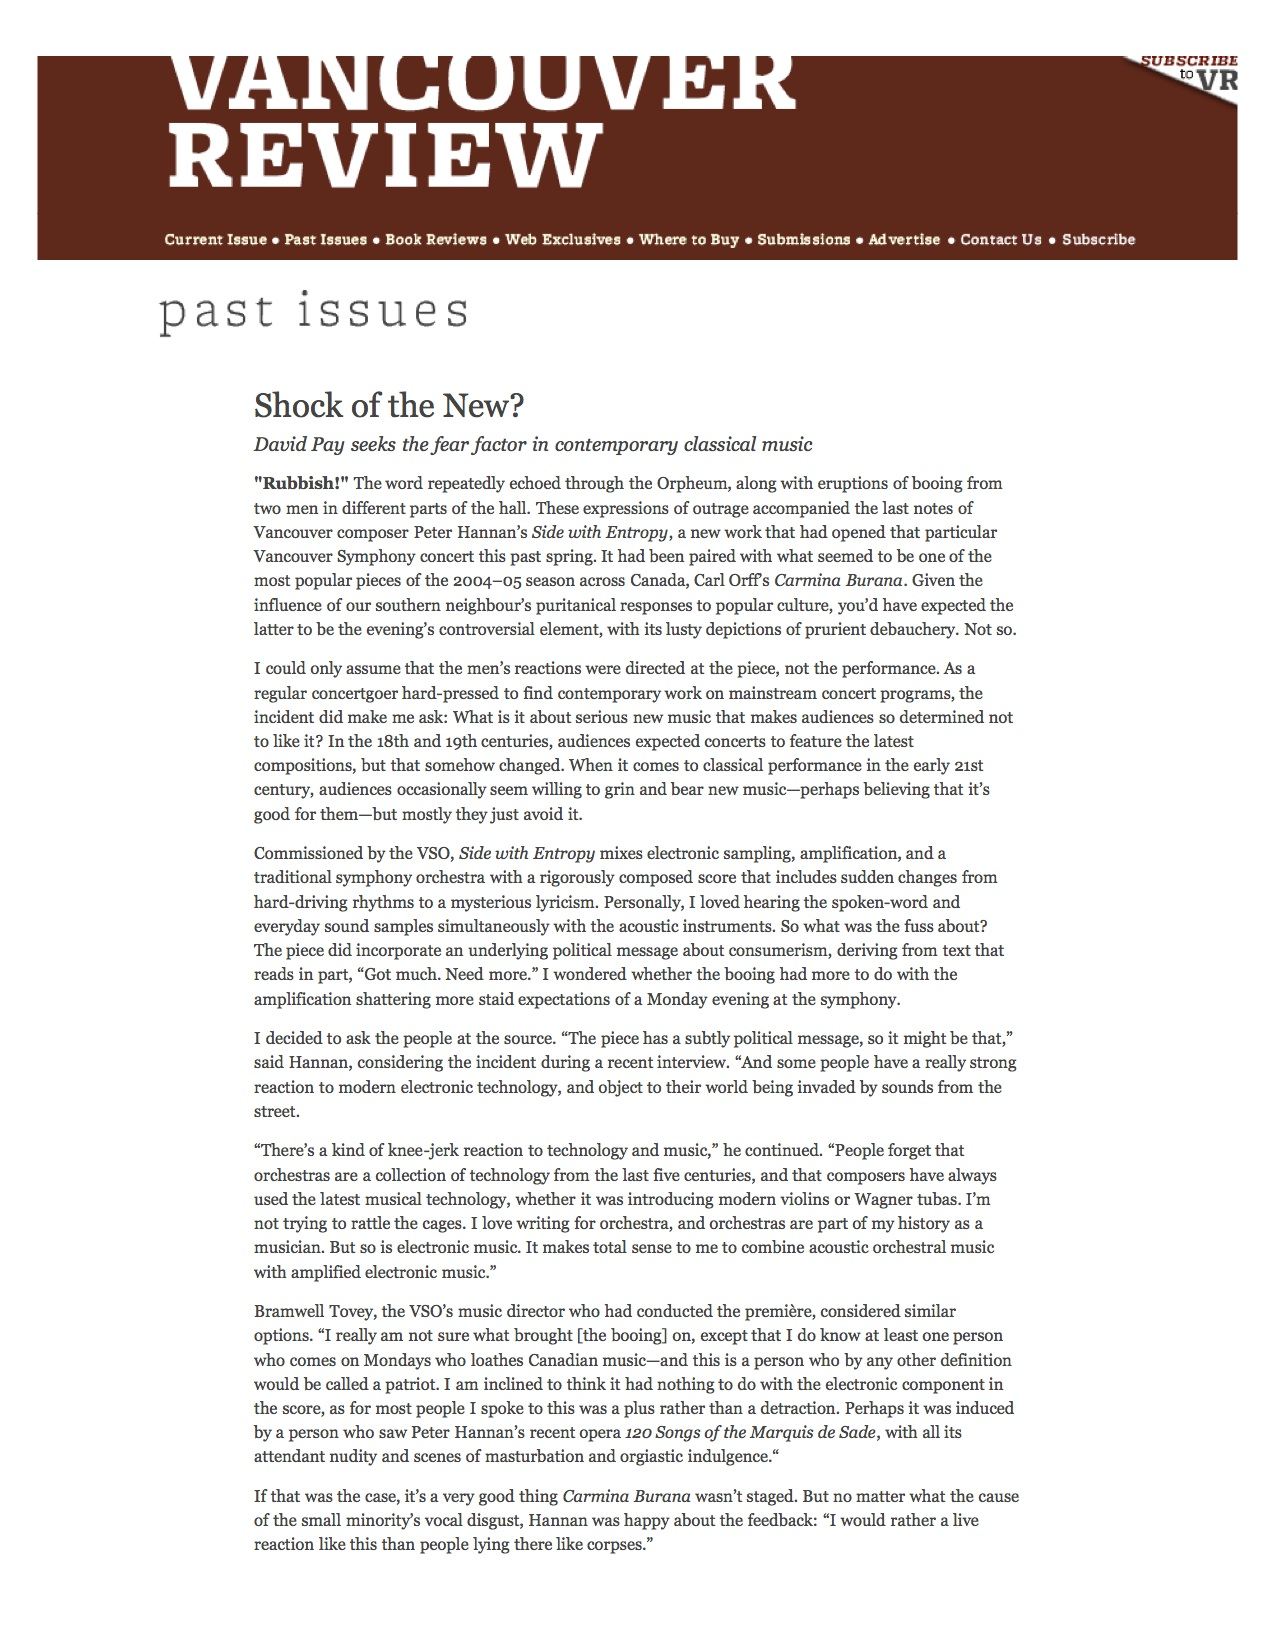 Vancouver Review | Shock of the New.jpg